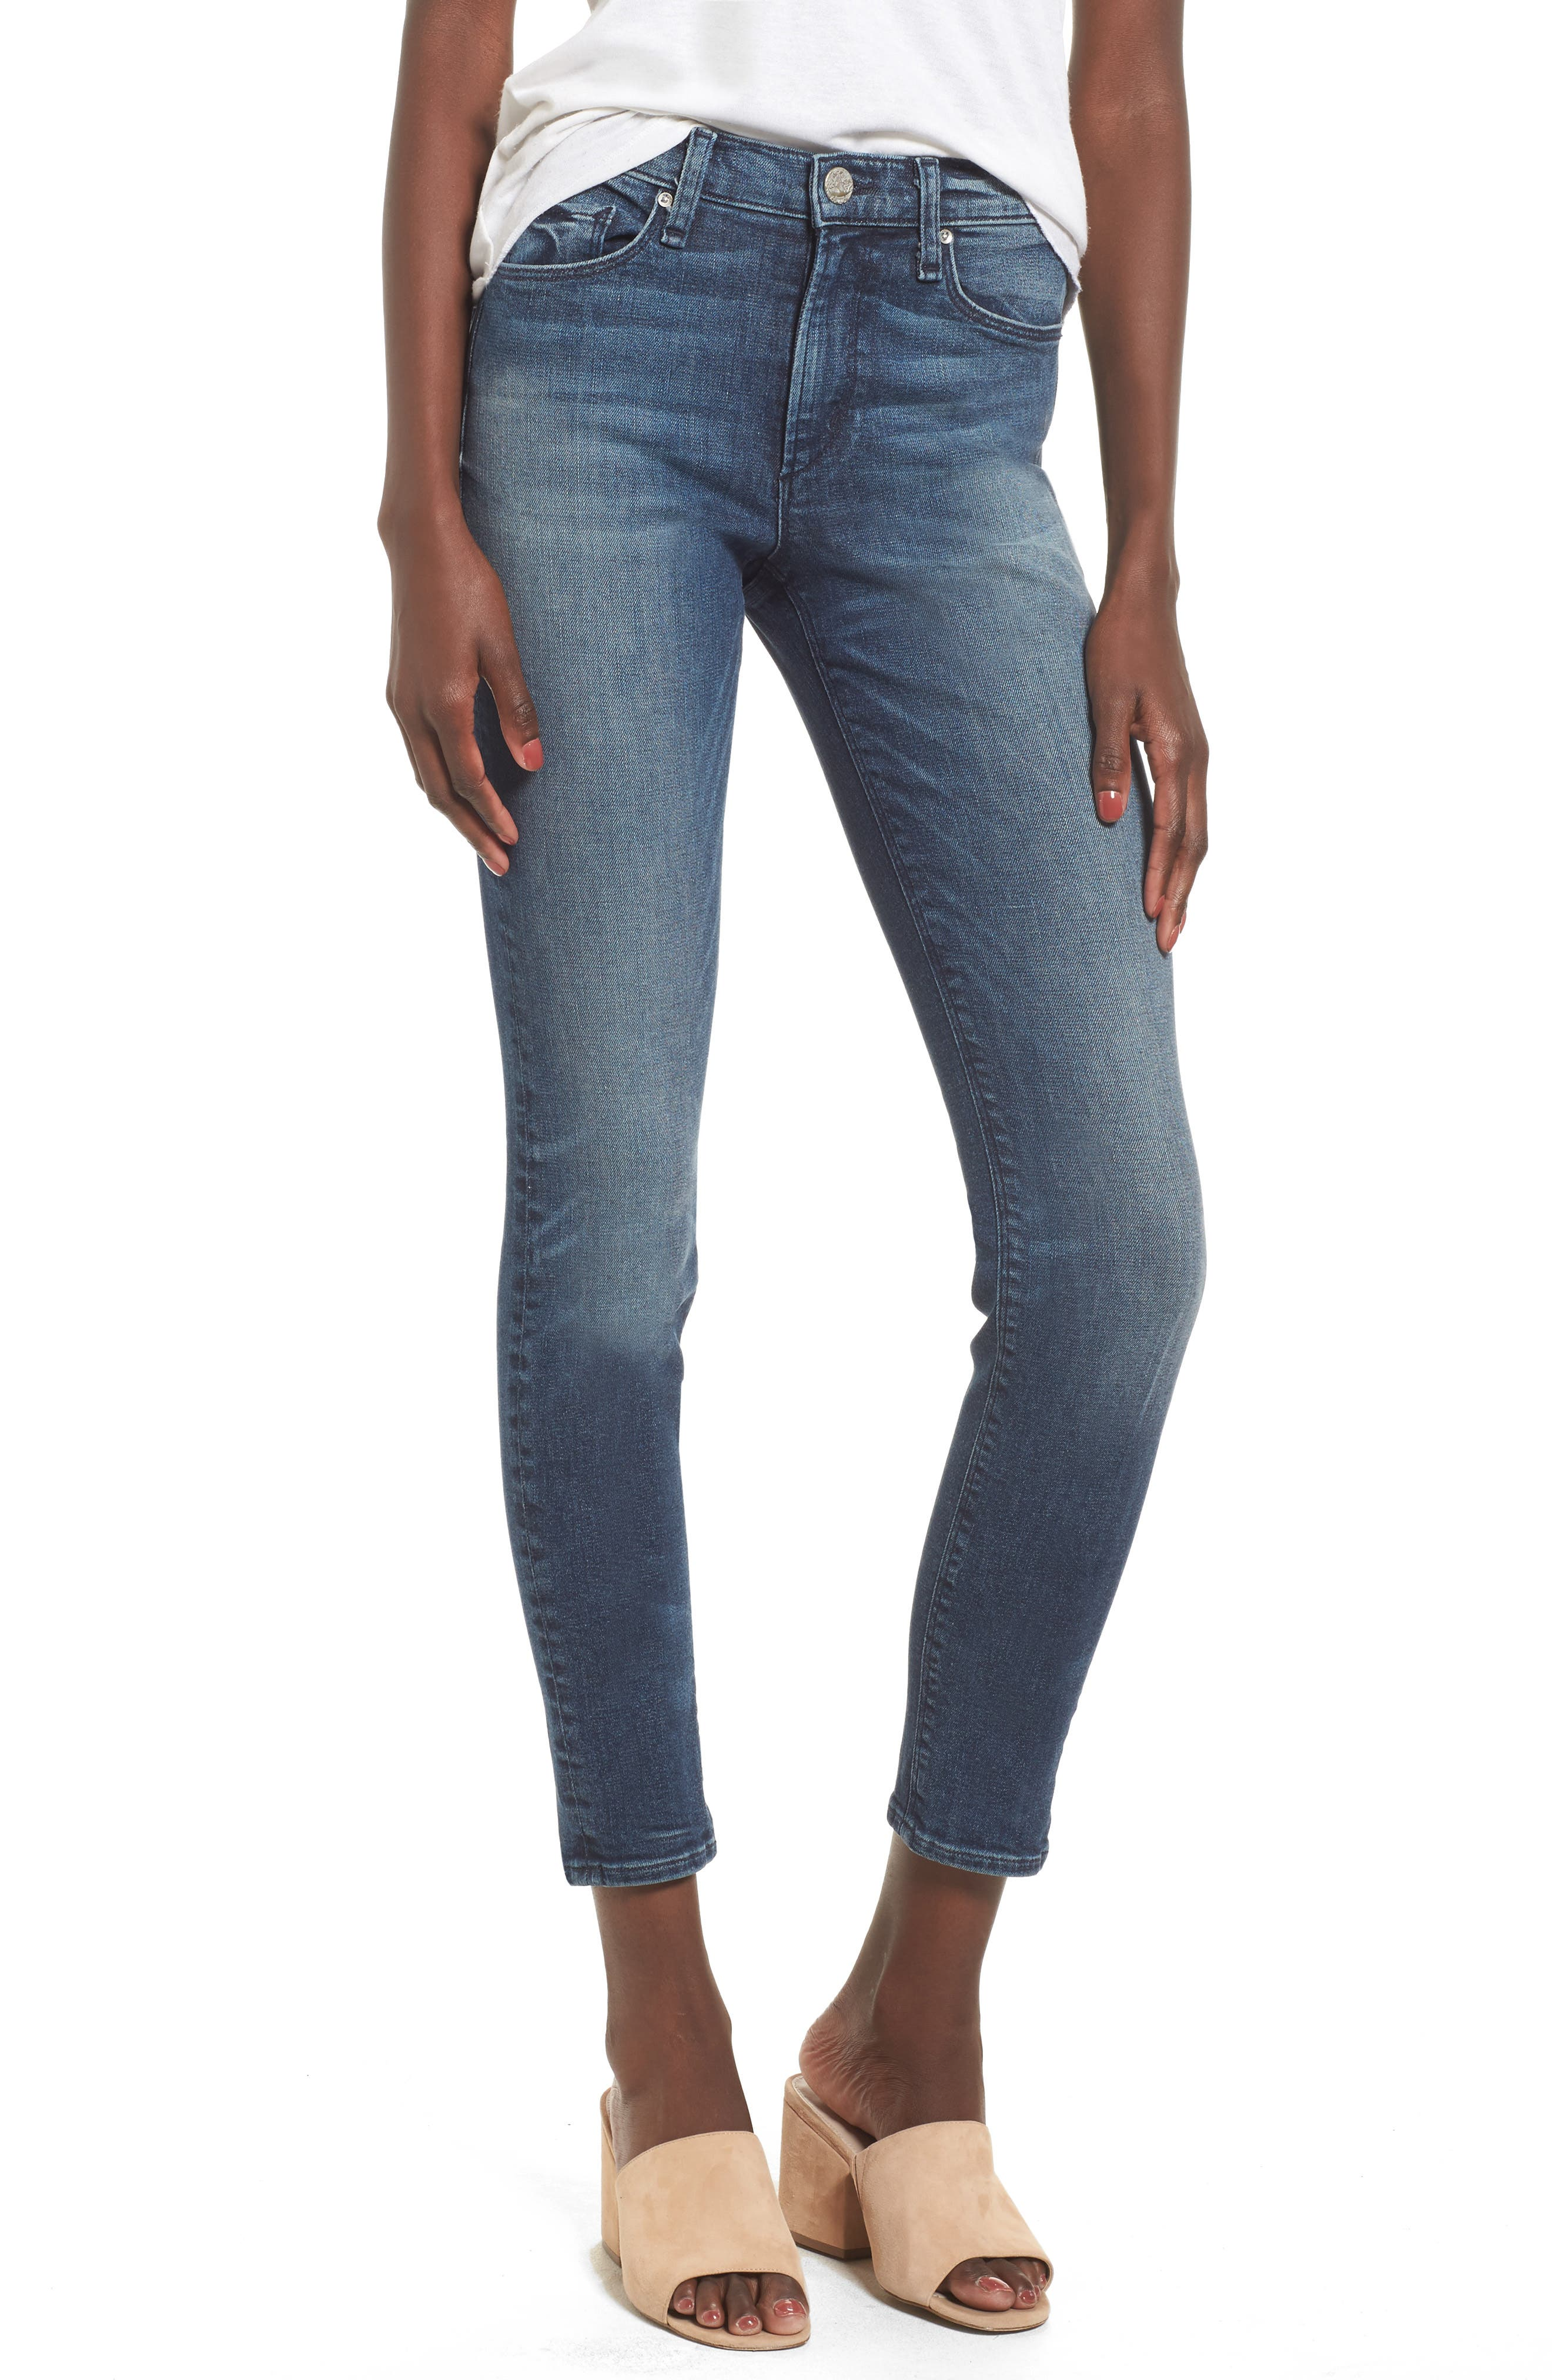 McGuire Newton High Waist Skinny Jeans (Isle in the Sky)